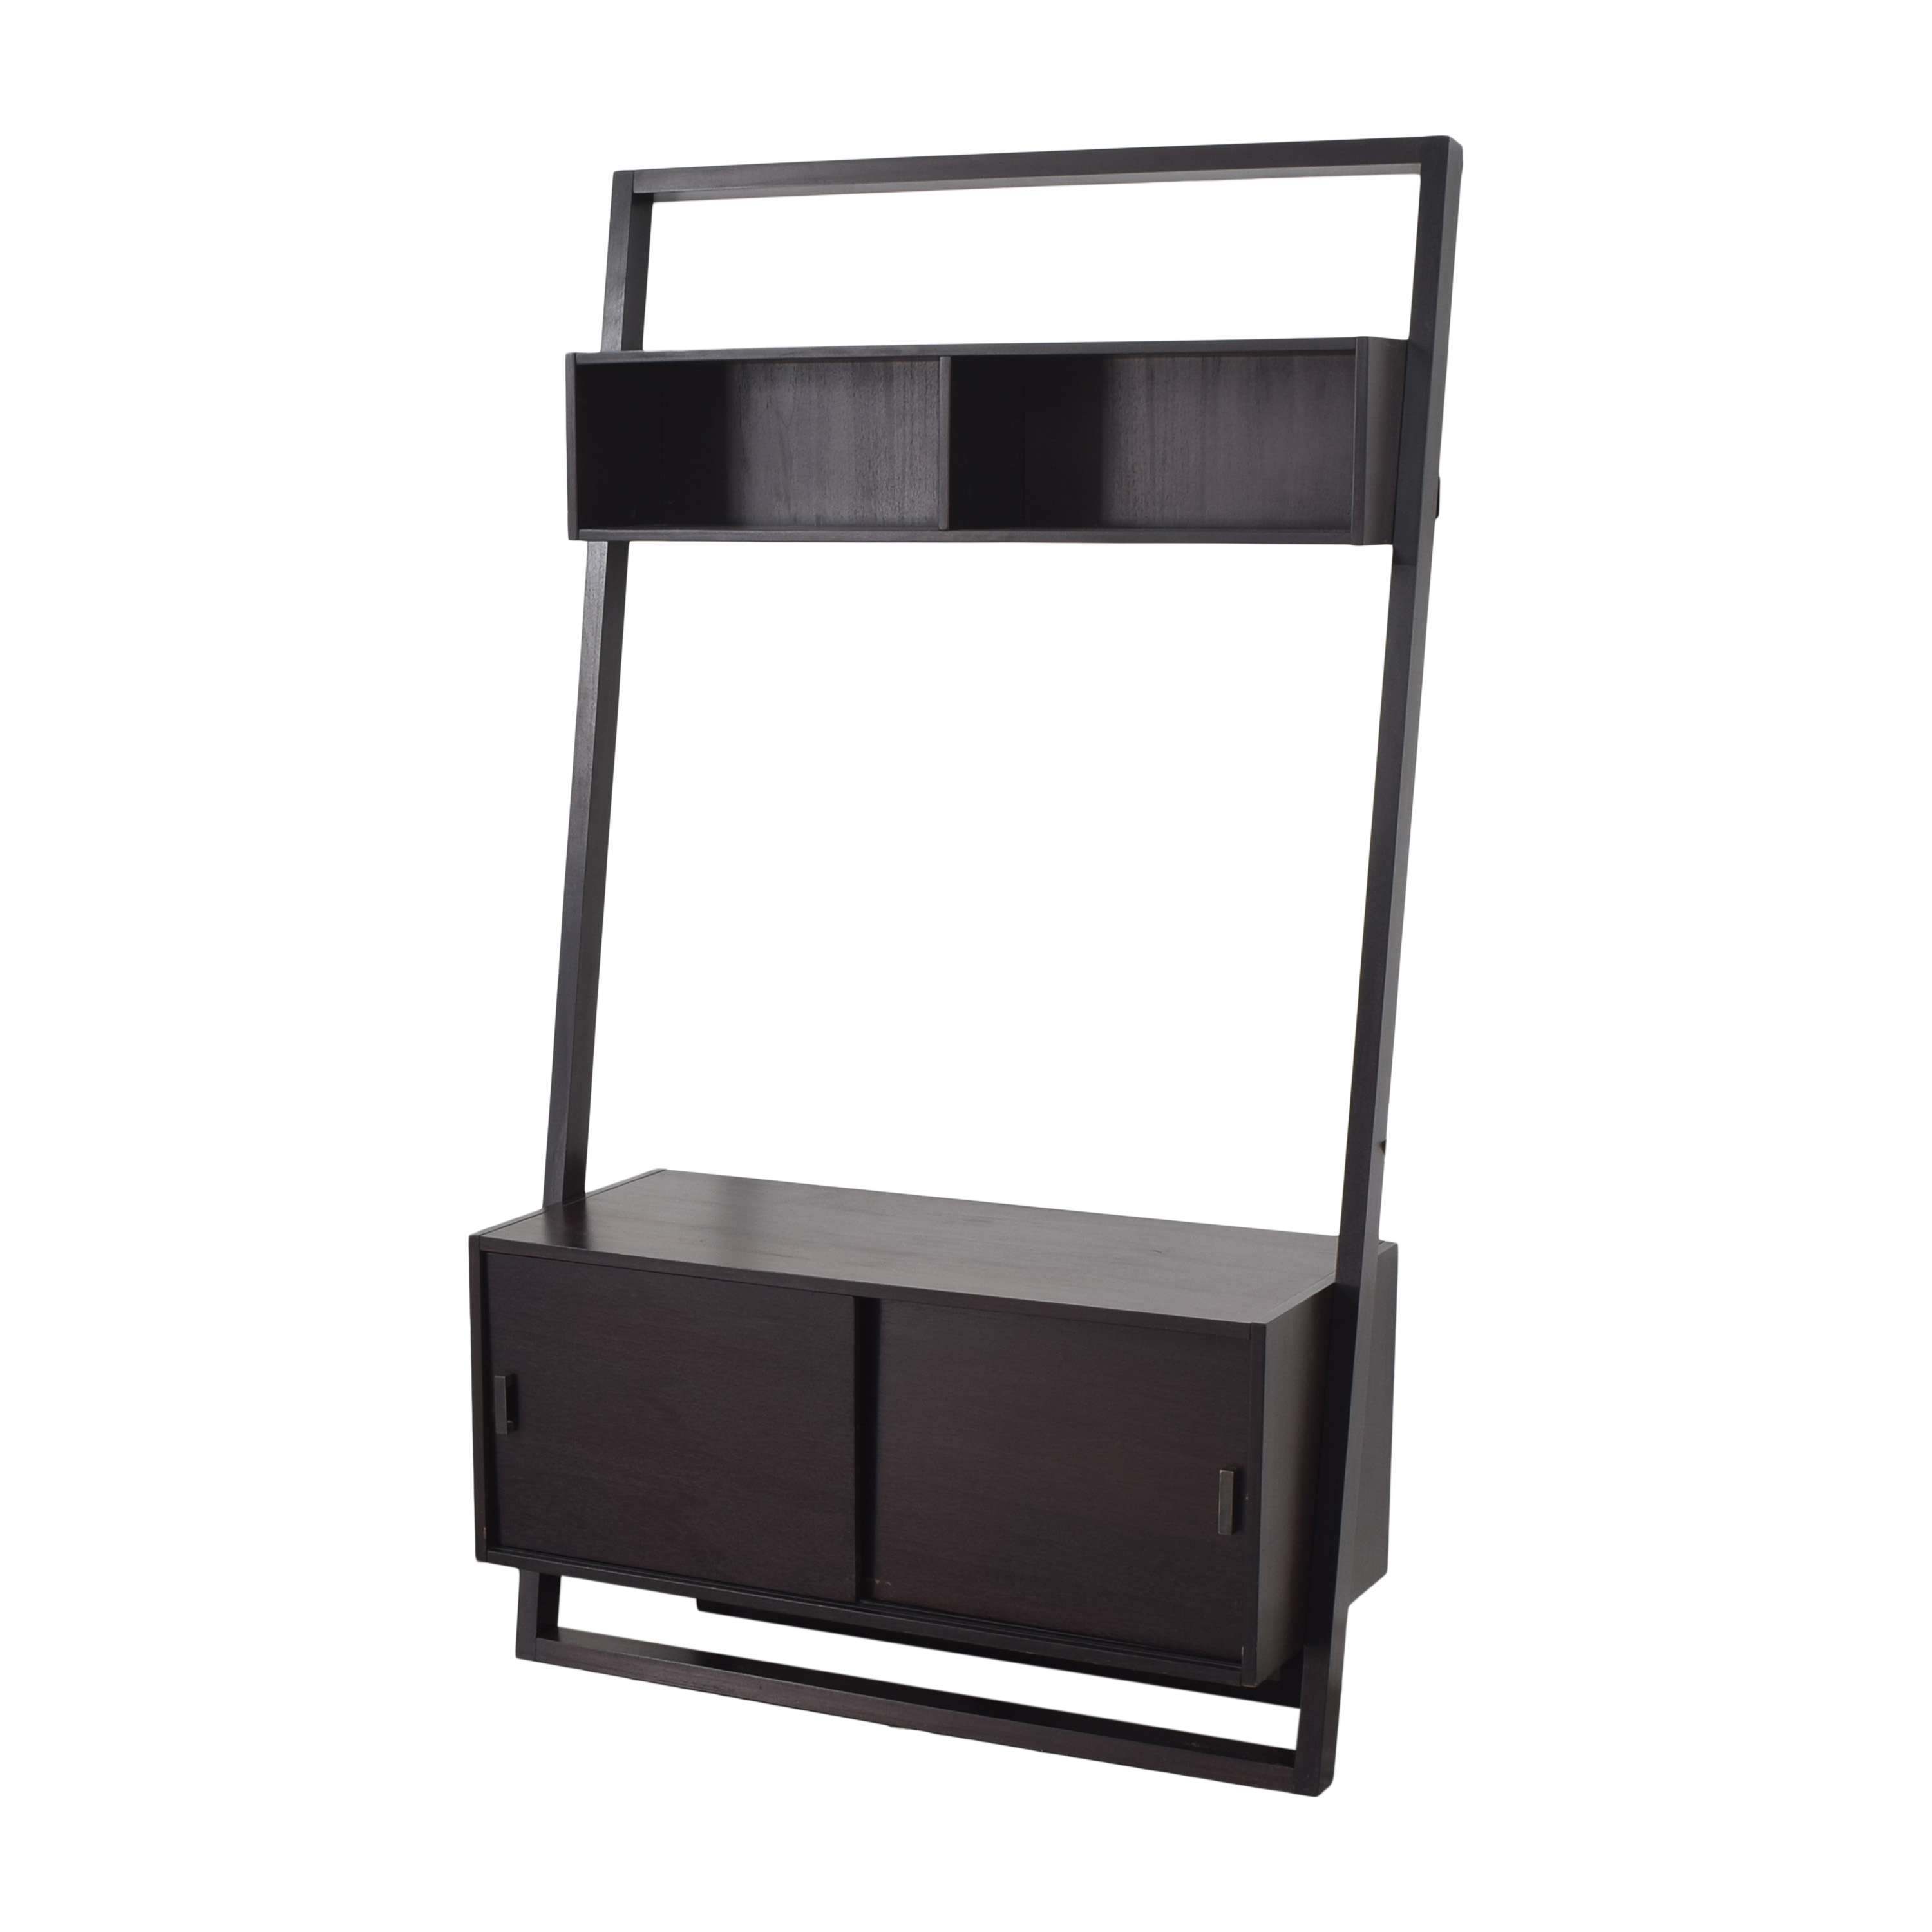 Crate & Barrel Crate & Barrel Sloane Leaning Media Stand Storage